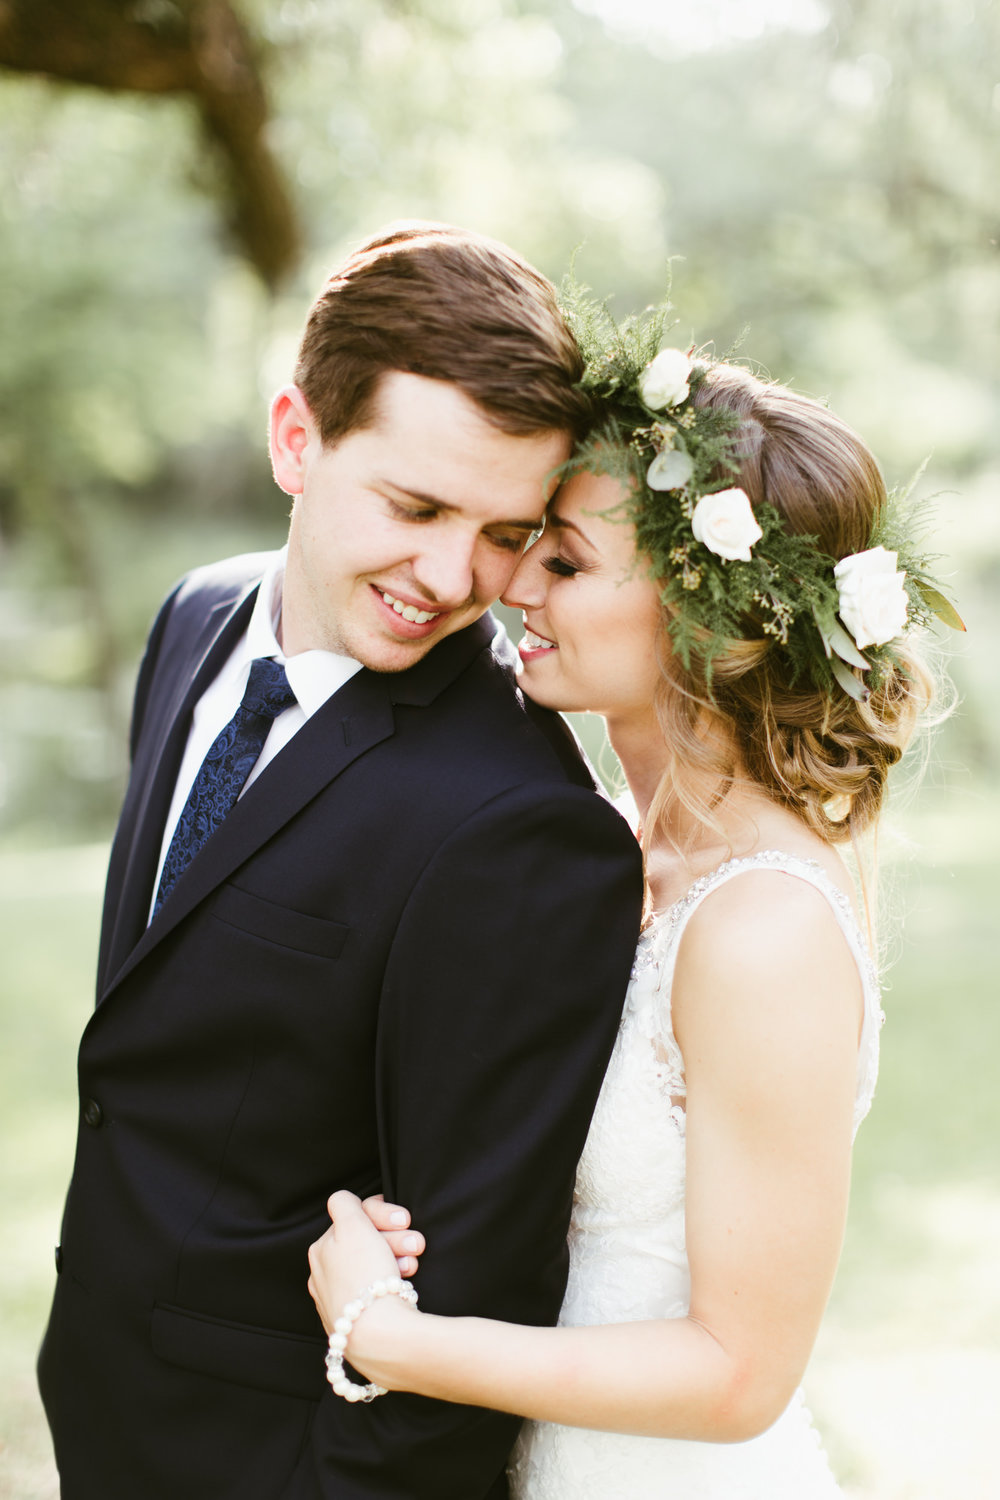 romantic, classic wedding photos // adventure wedding photographer // www.abbihearne.com